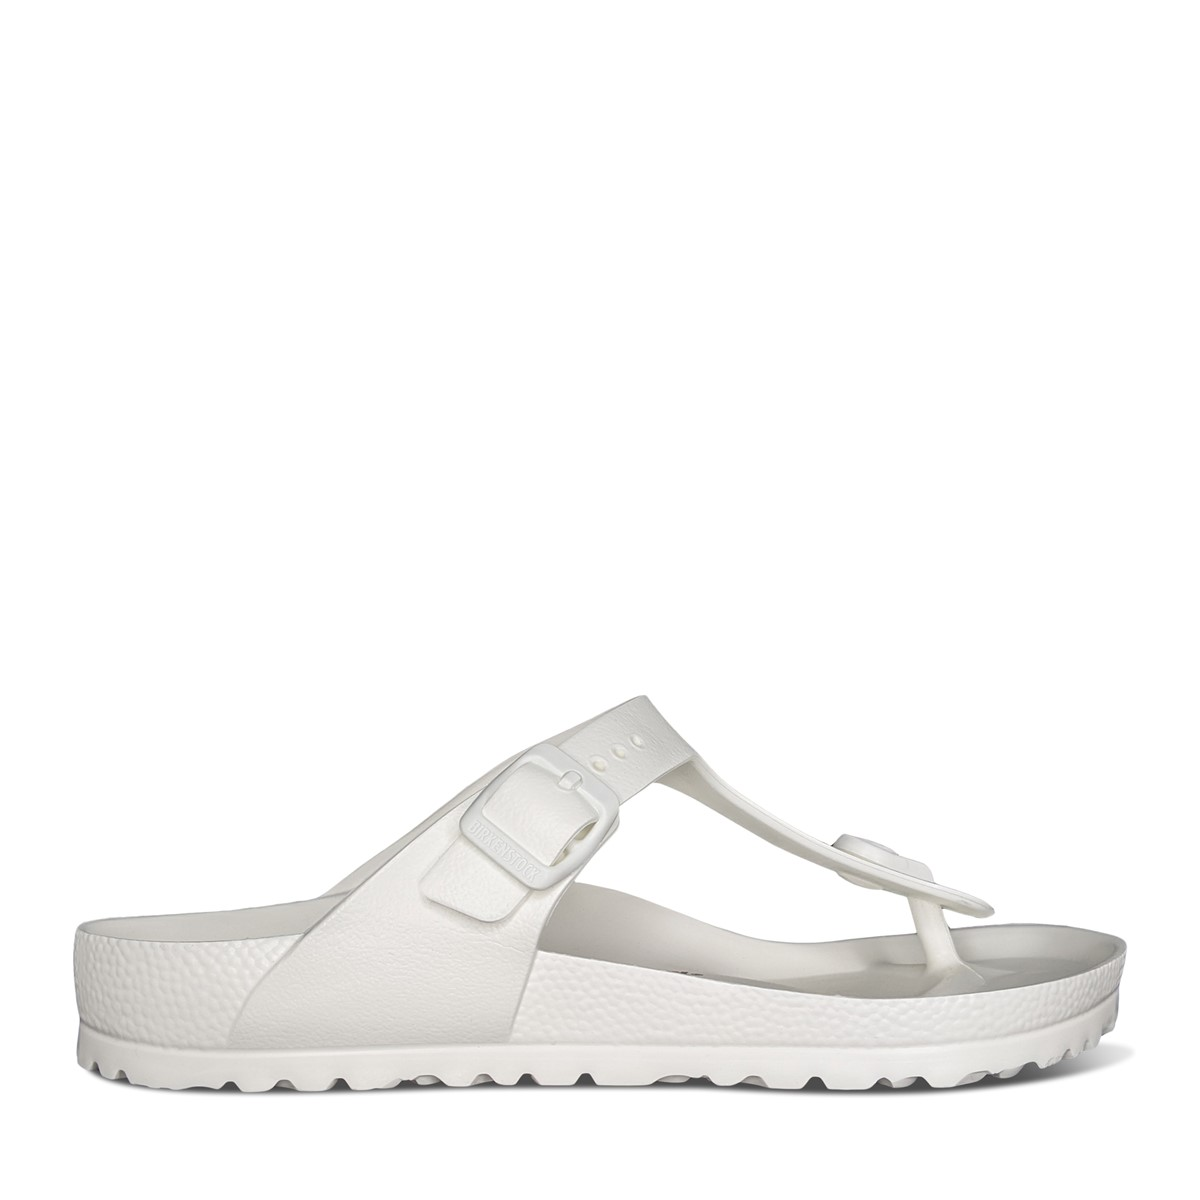 Women's Gizeh EVA Thong Sandals in White